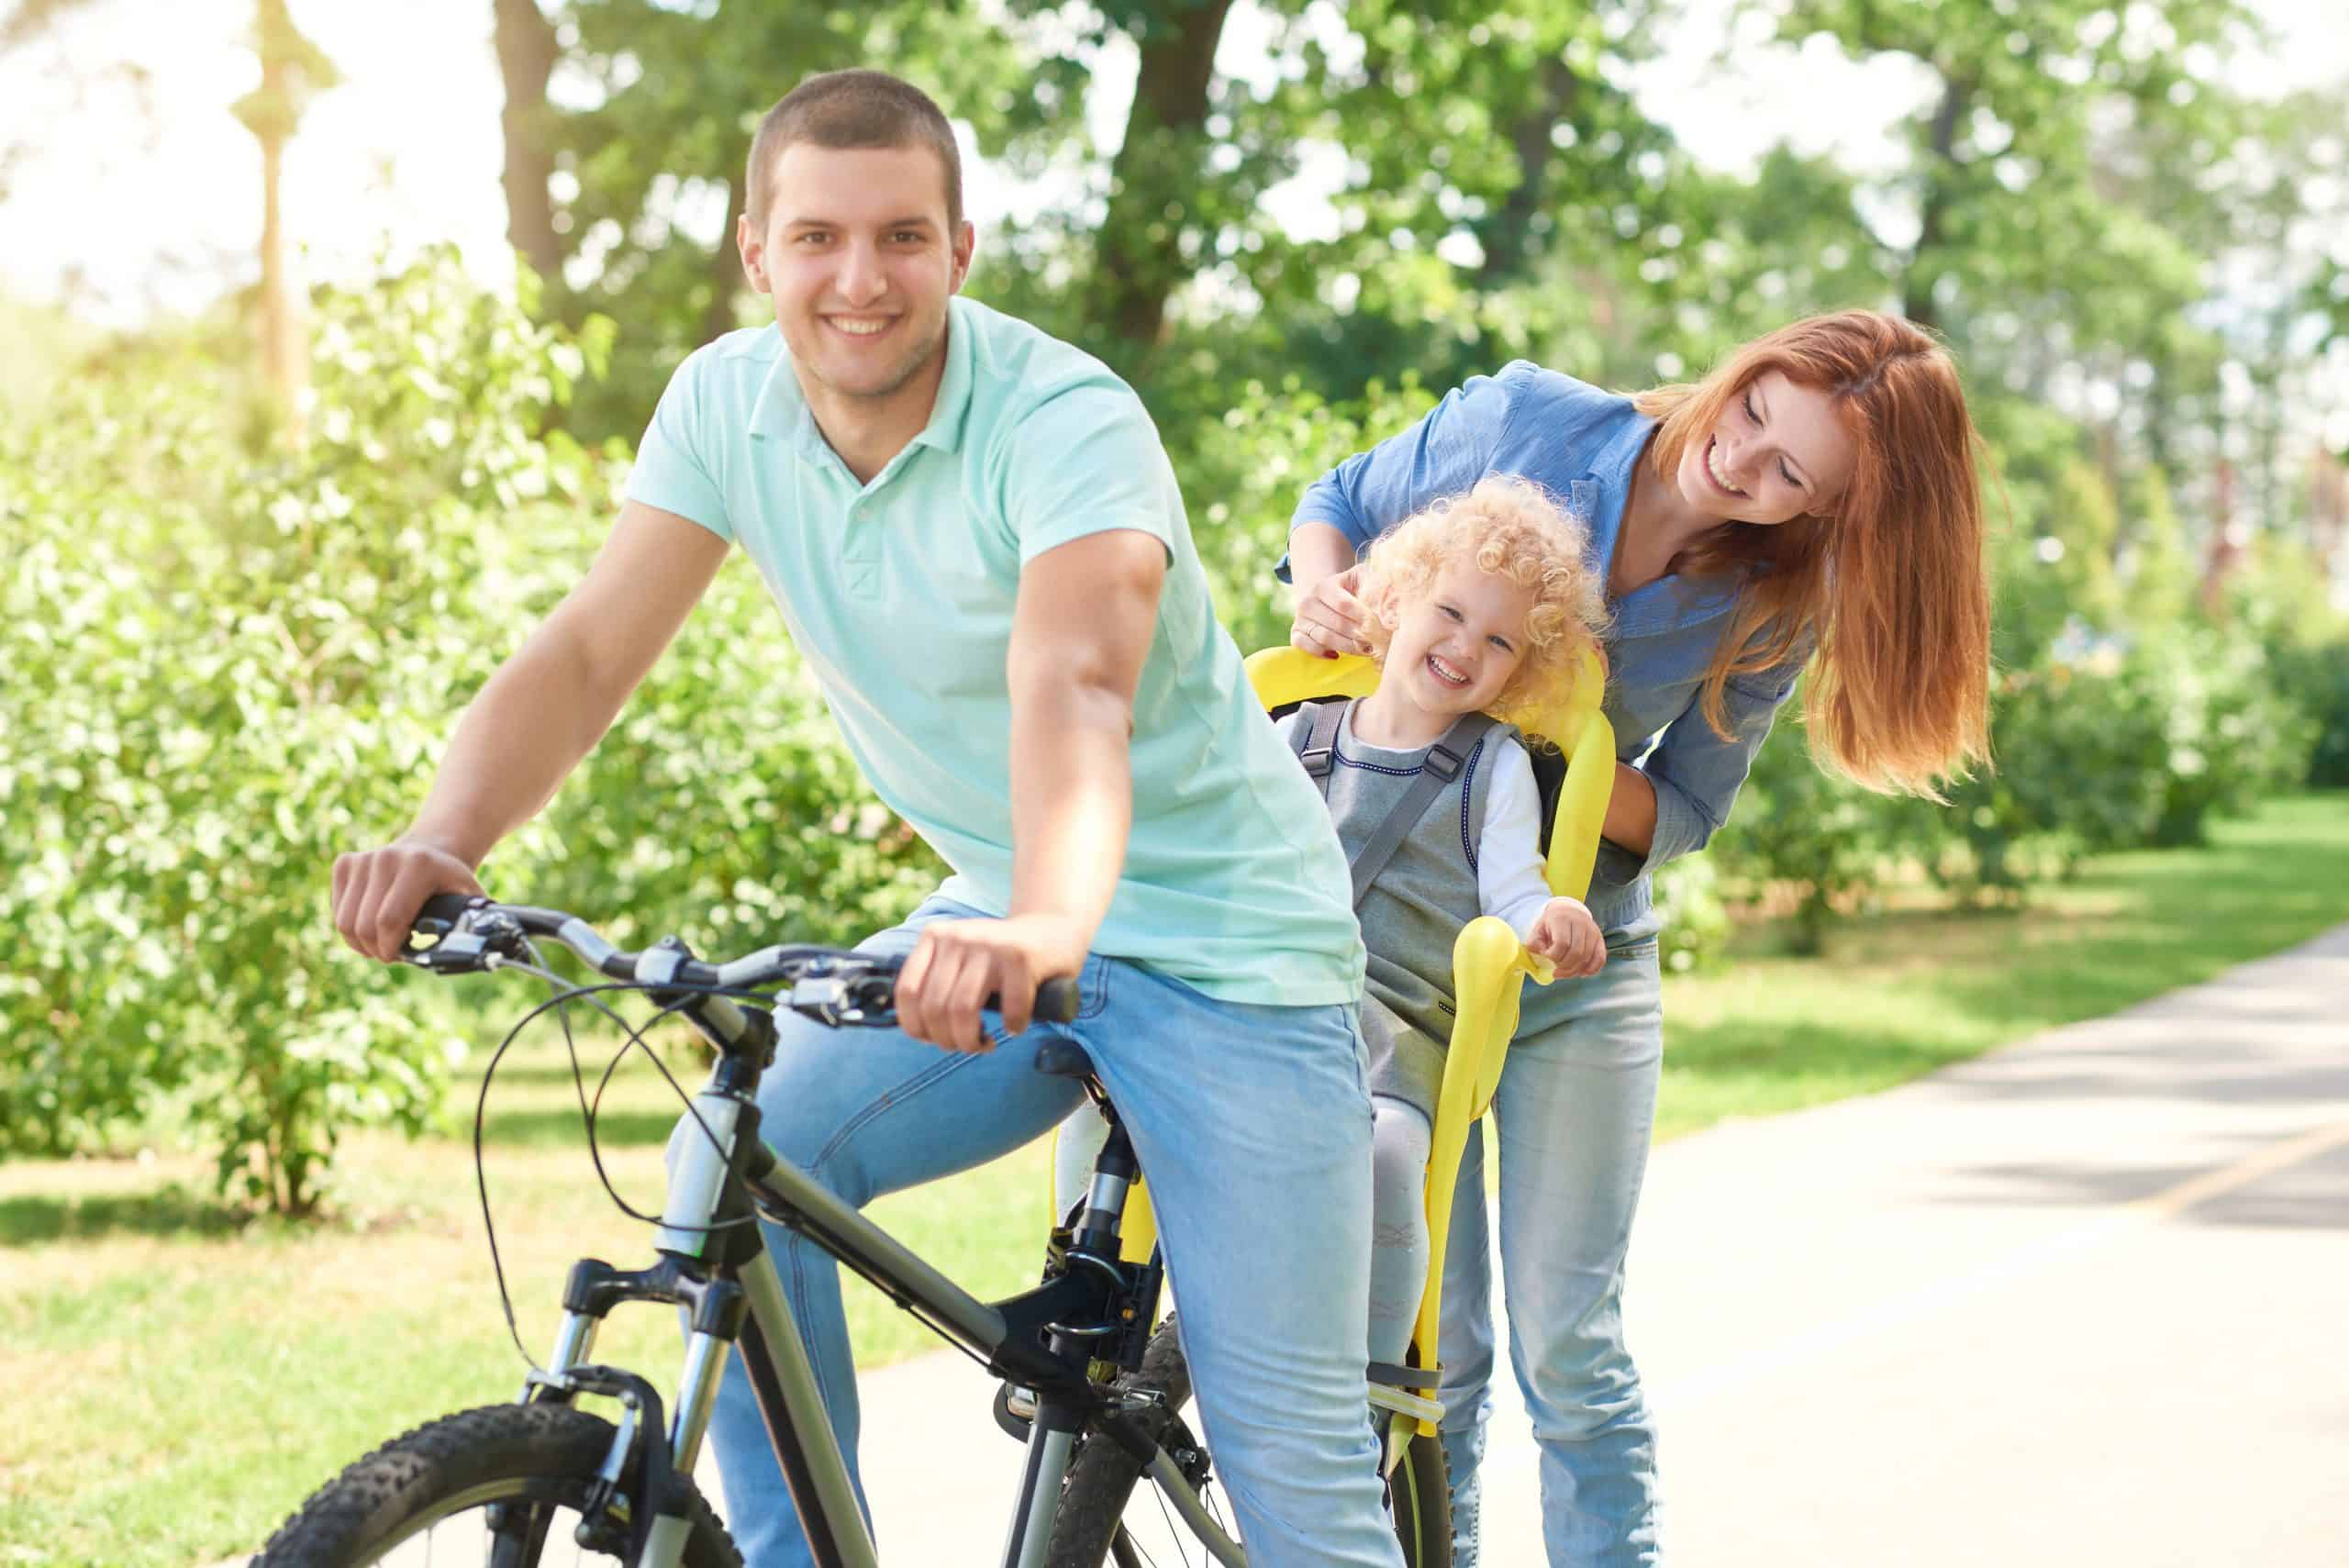 Is It Legal To Carry Your Child in a Bike Seat on An Electric Bike?